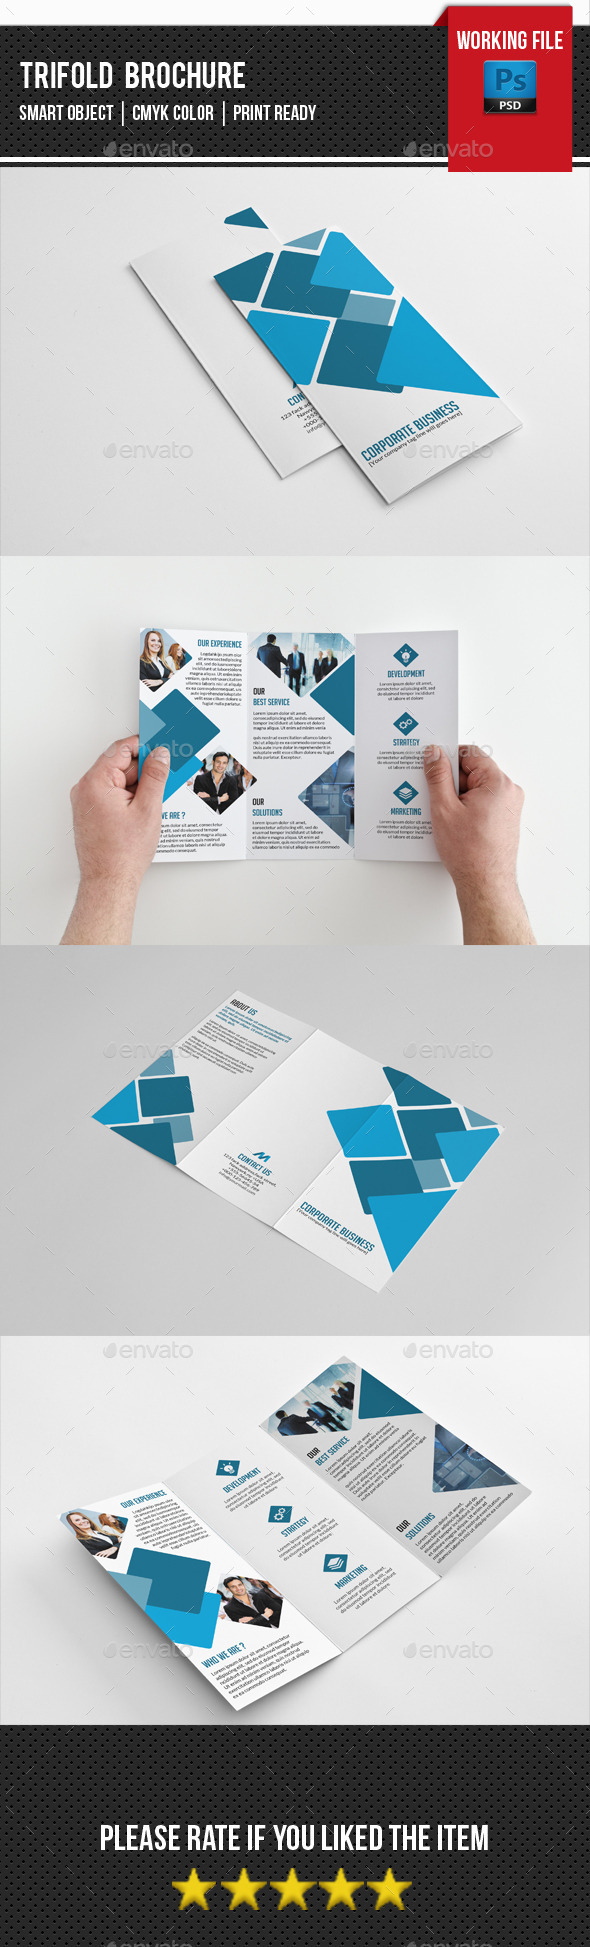 Creative Trifold Brochure-V238 - Corporate Brochures